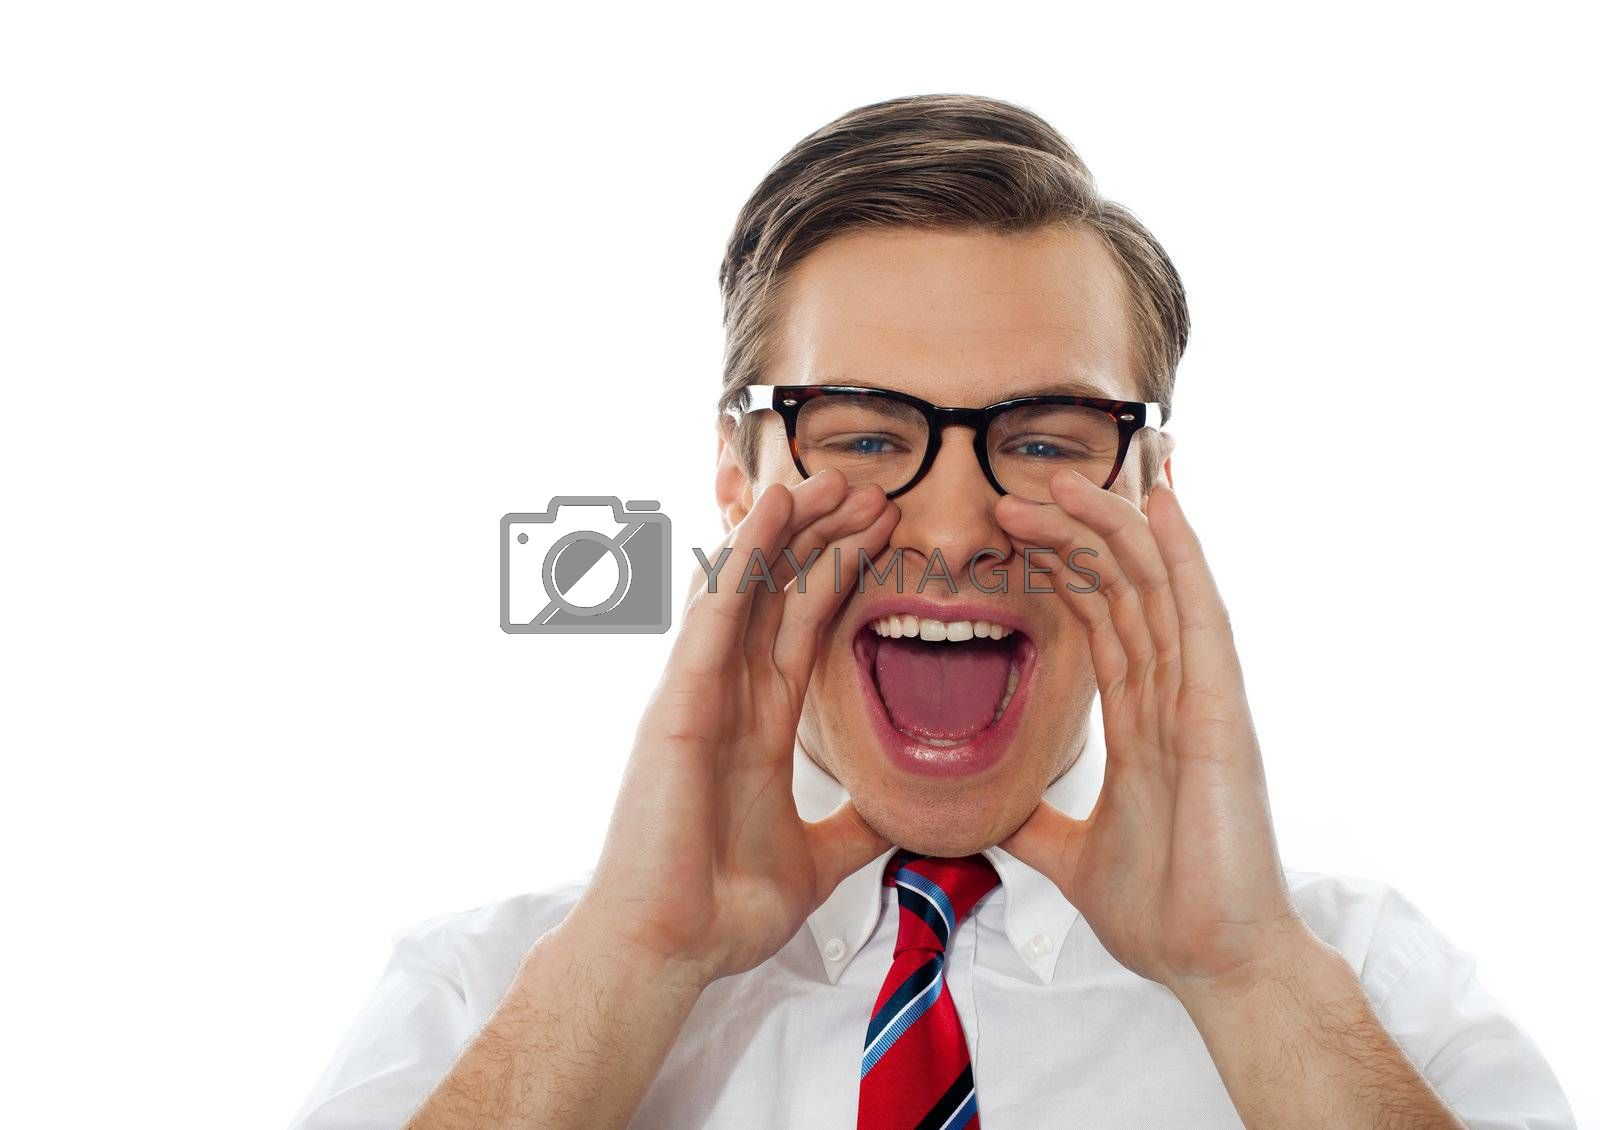 Closeup shot of a young man shouting loud by stockyimages